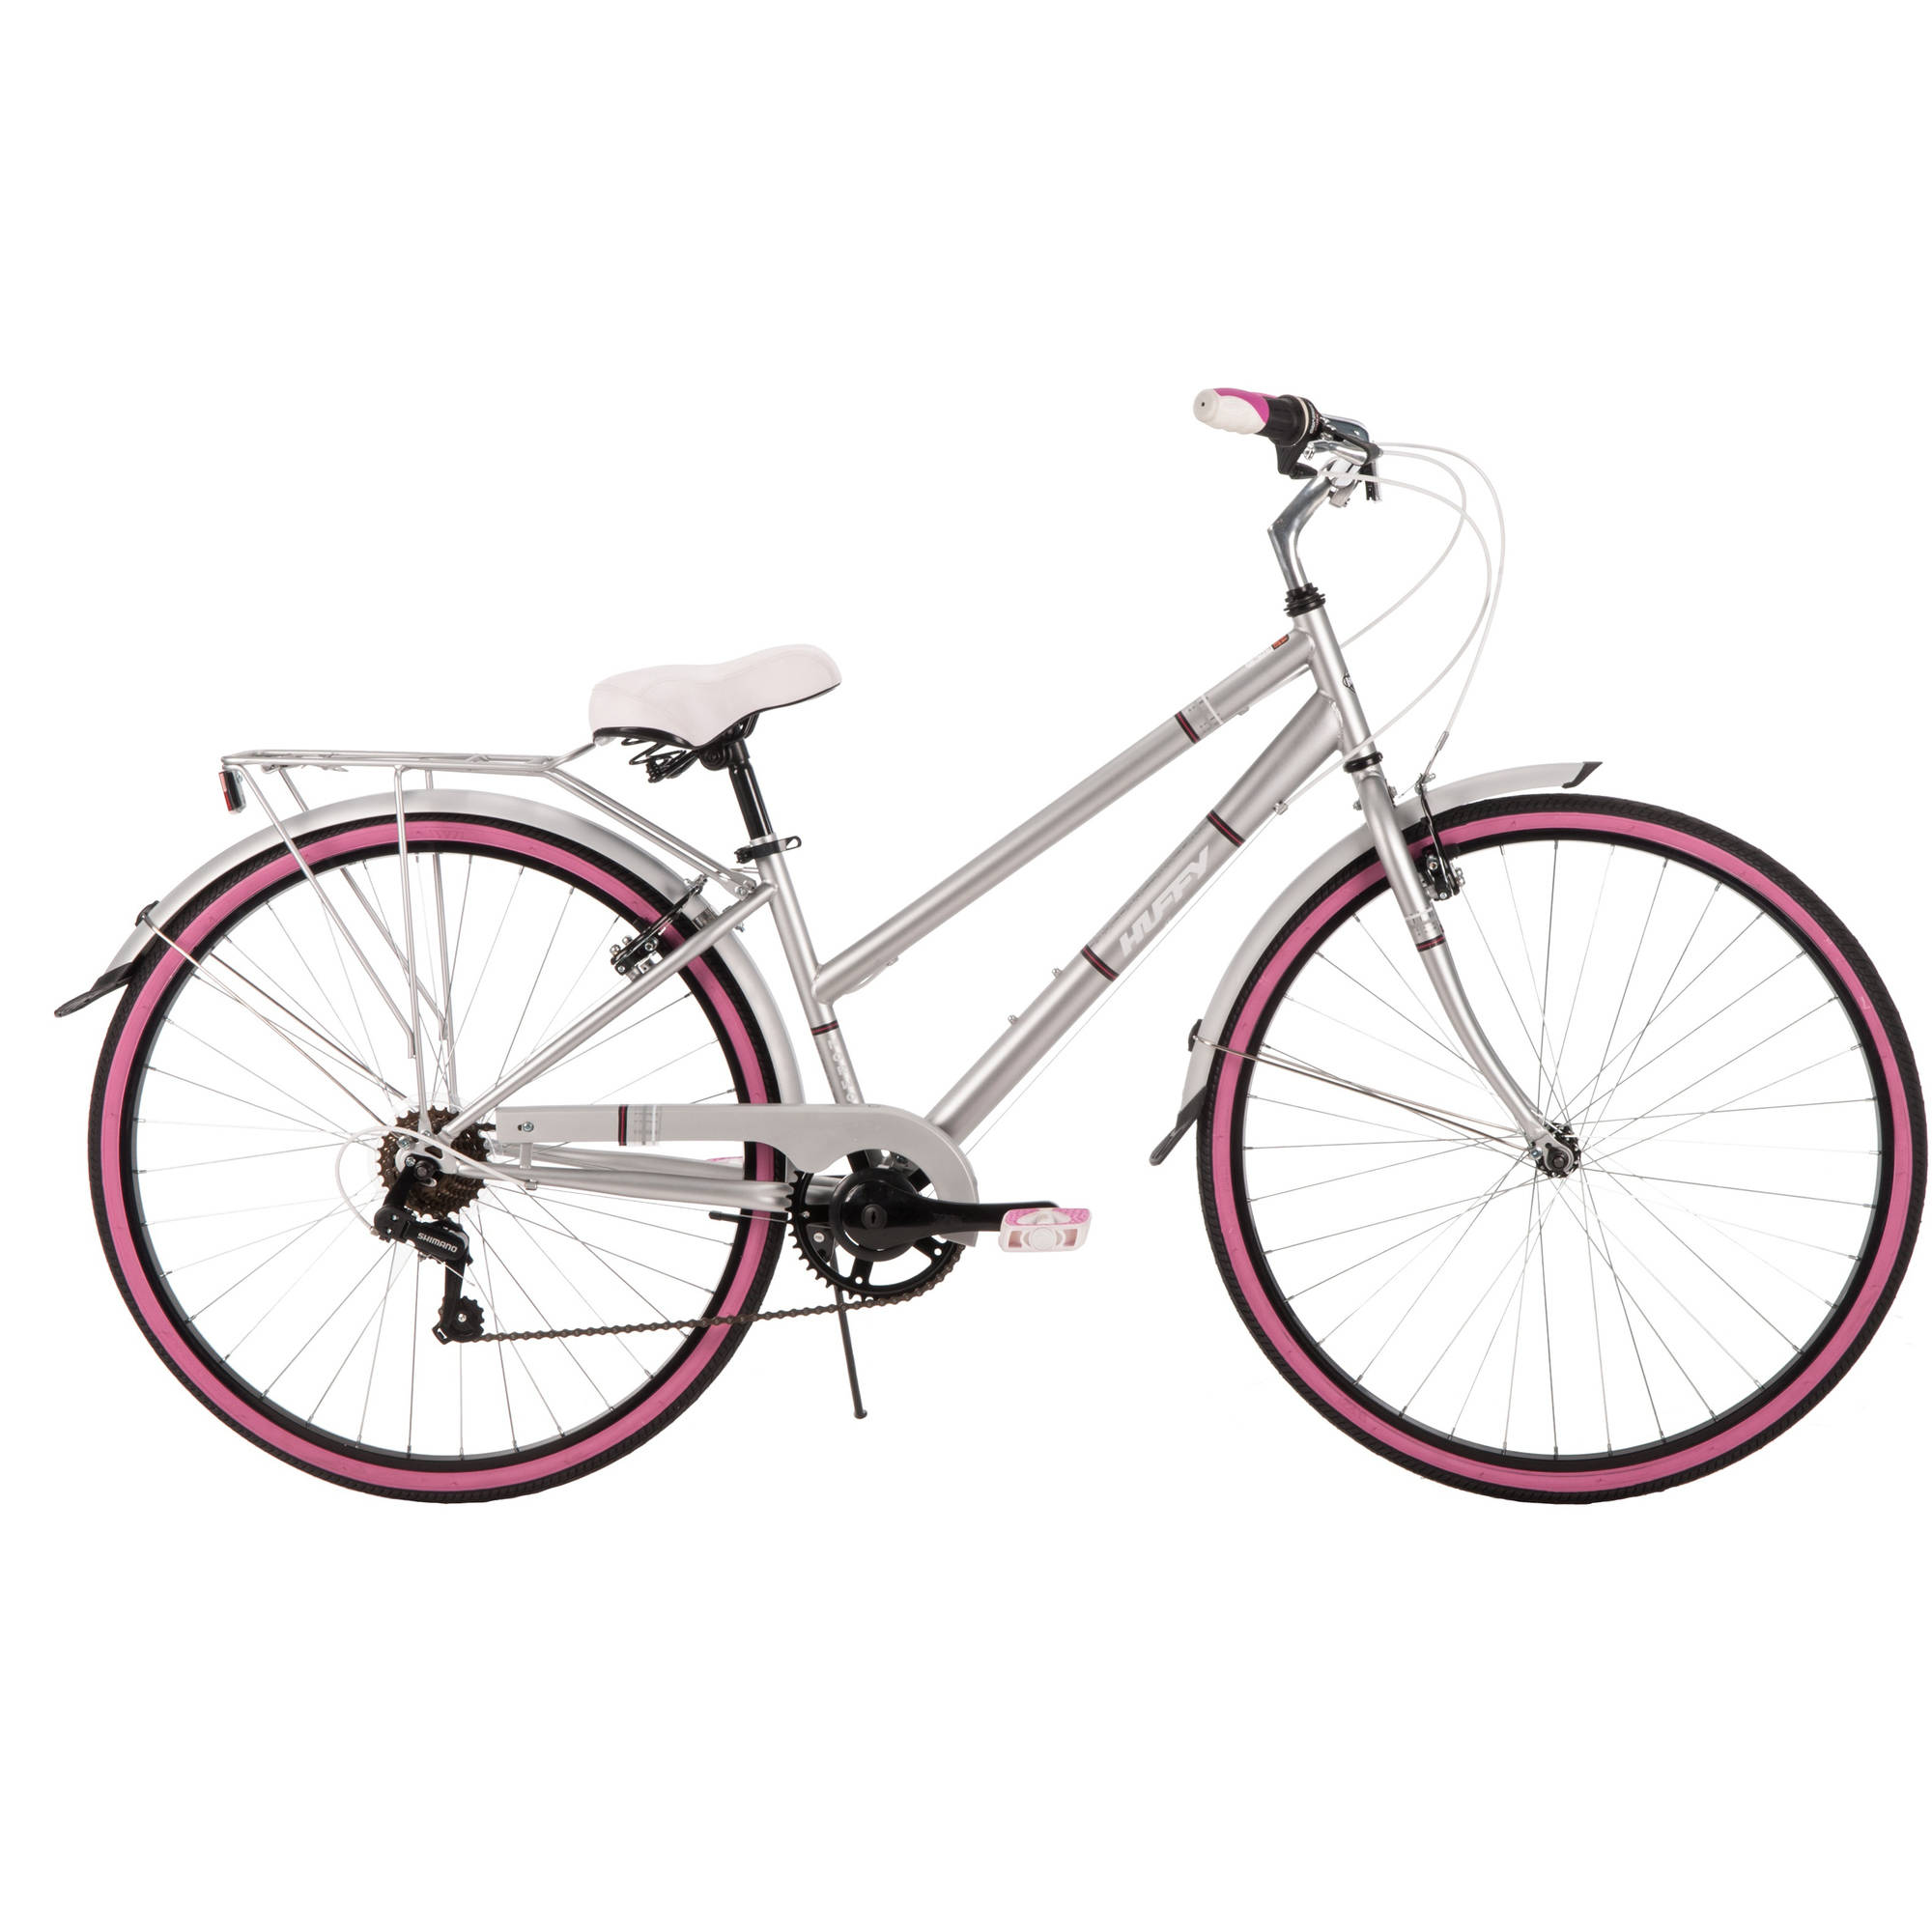 700C Huffy Women's Norwood Cruiser Bike, Grey